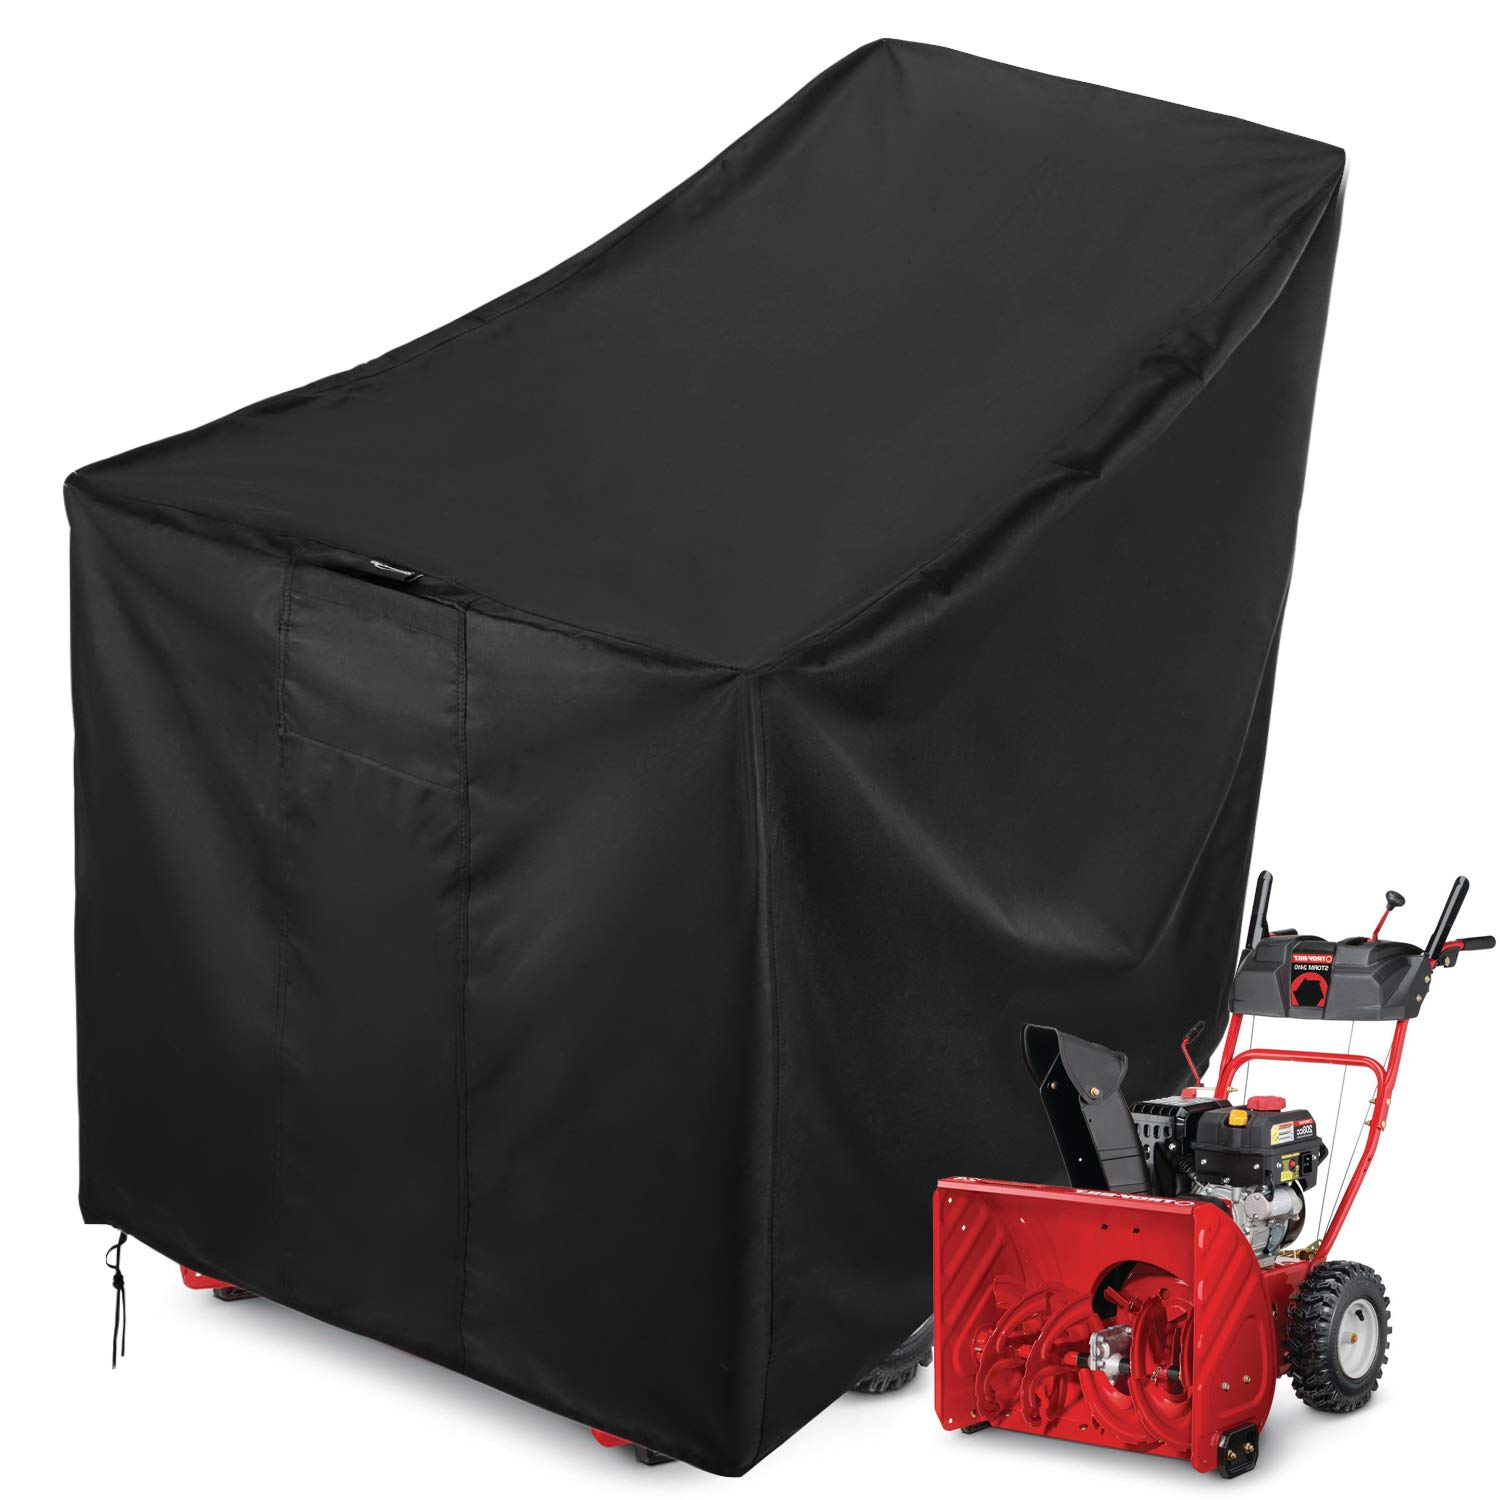 Sunkorto Snow Thrower Cover, Waterproof Heavy Duty Snowblower Cover All-Season Outdoor Protection, 600D Oxford Cloth and PVC Coating by Sunkorto